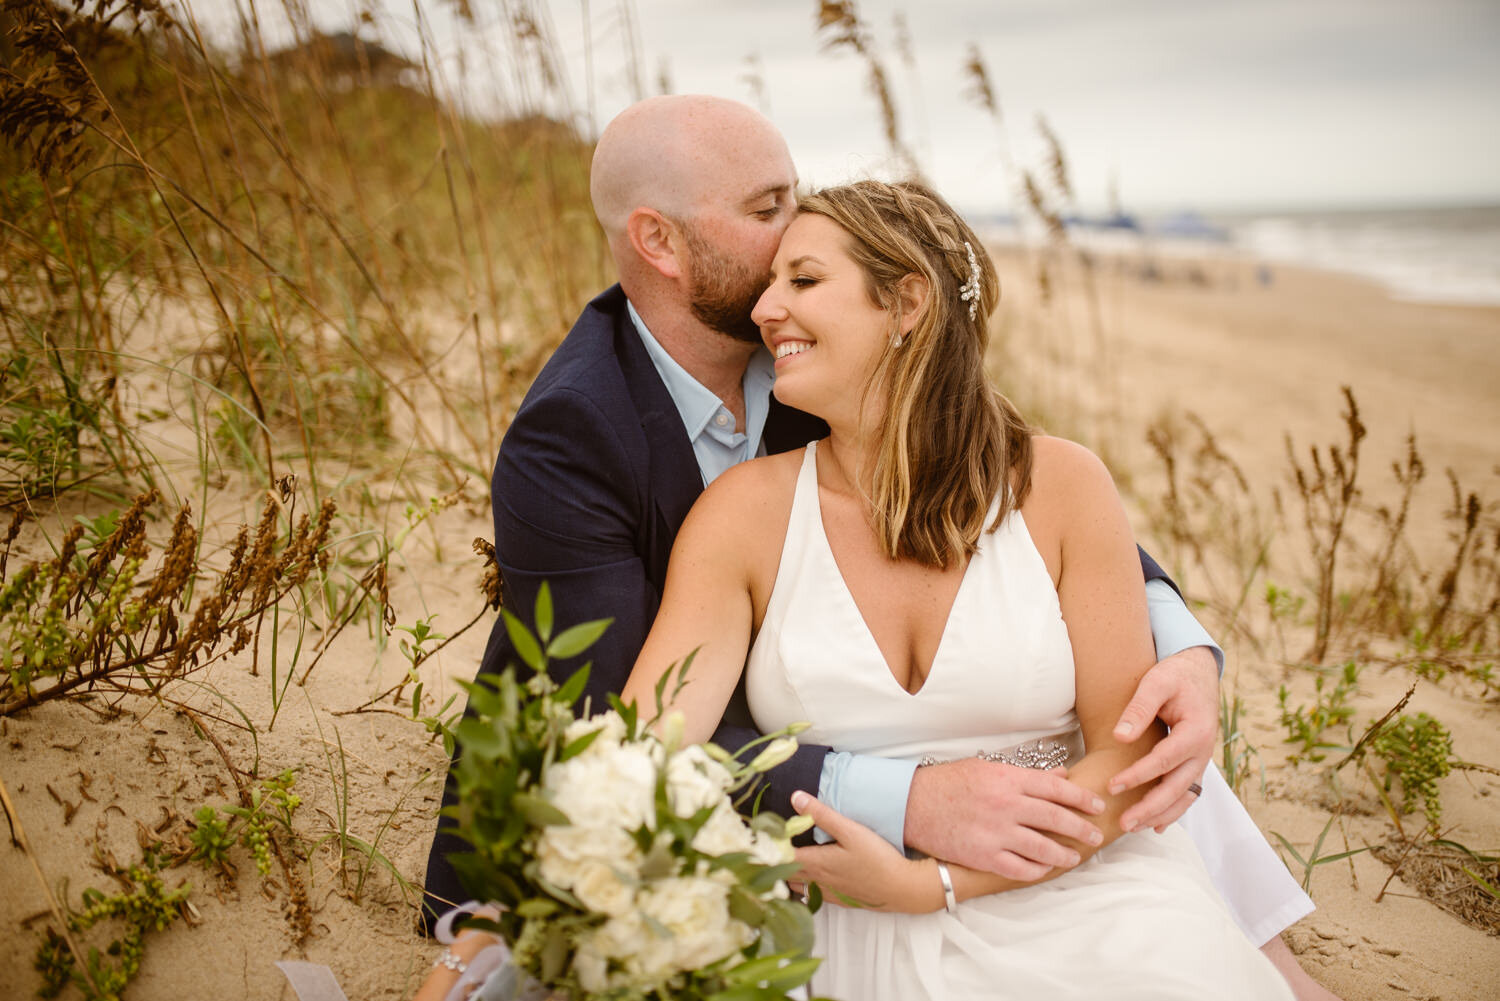 outer-banks-wedding-locations